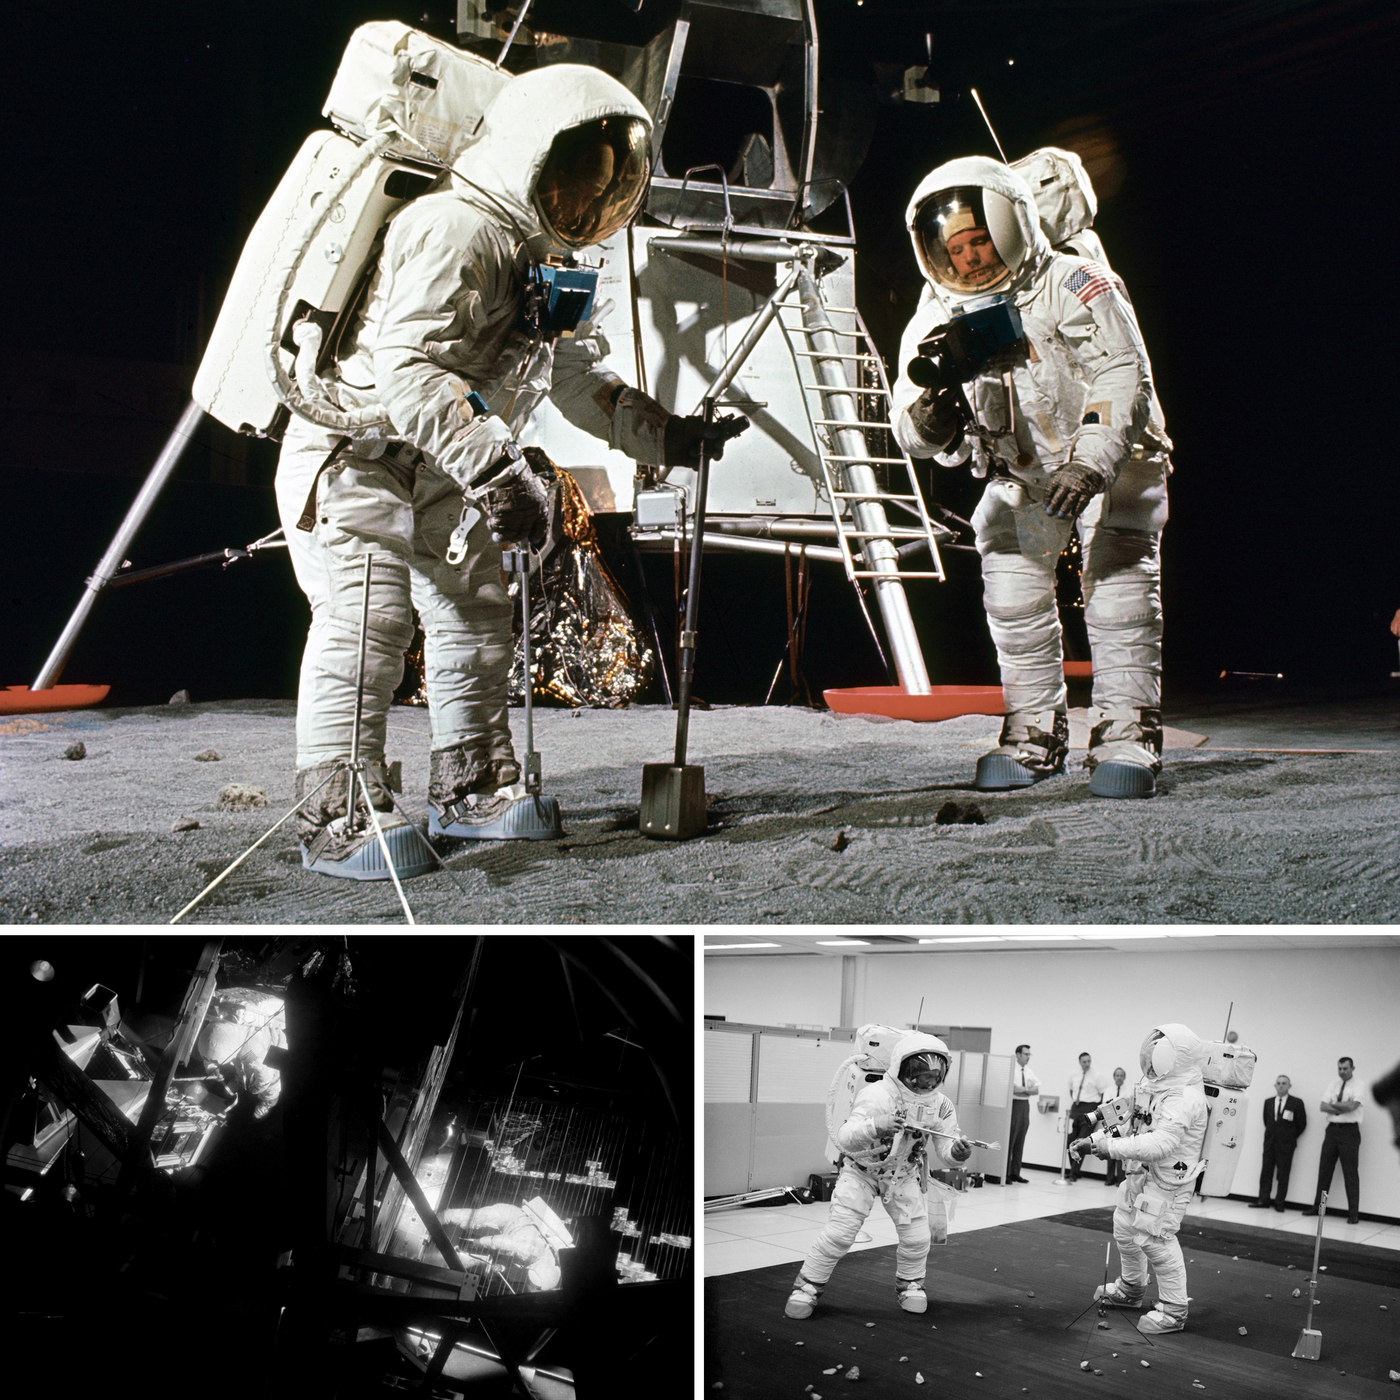 nasa apollo 11 astronauts - photo #22